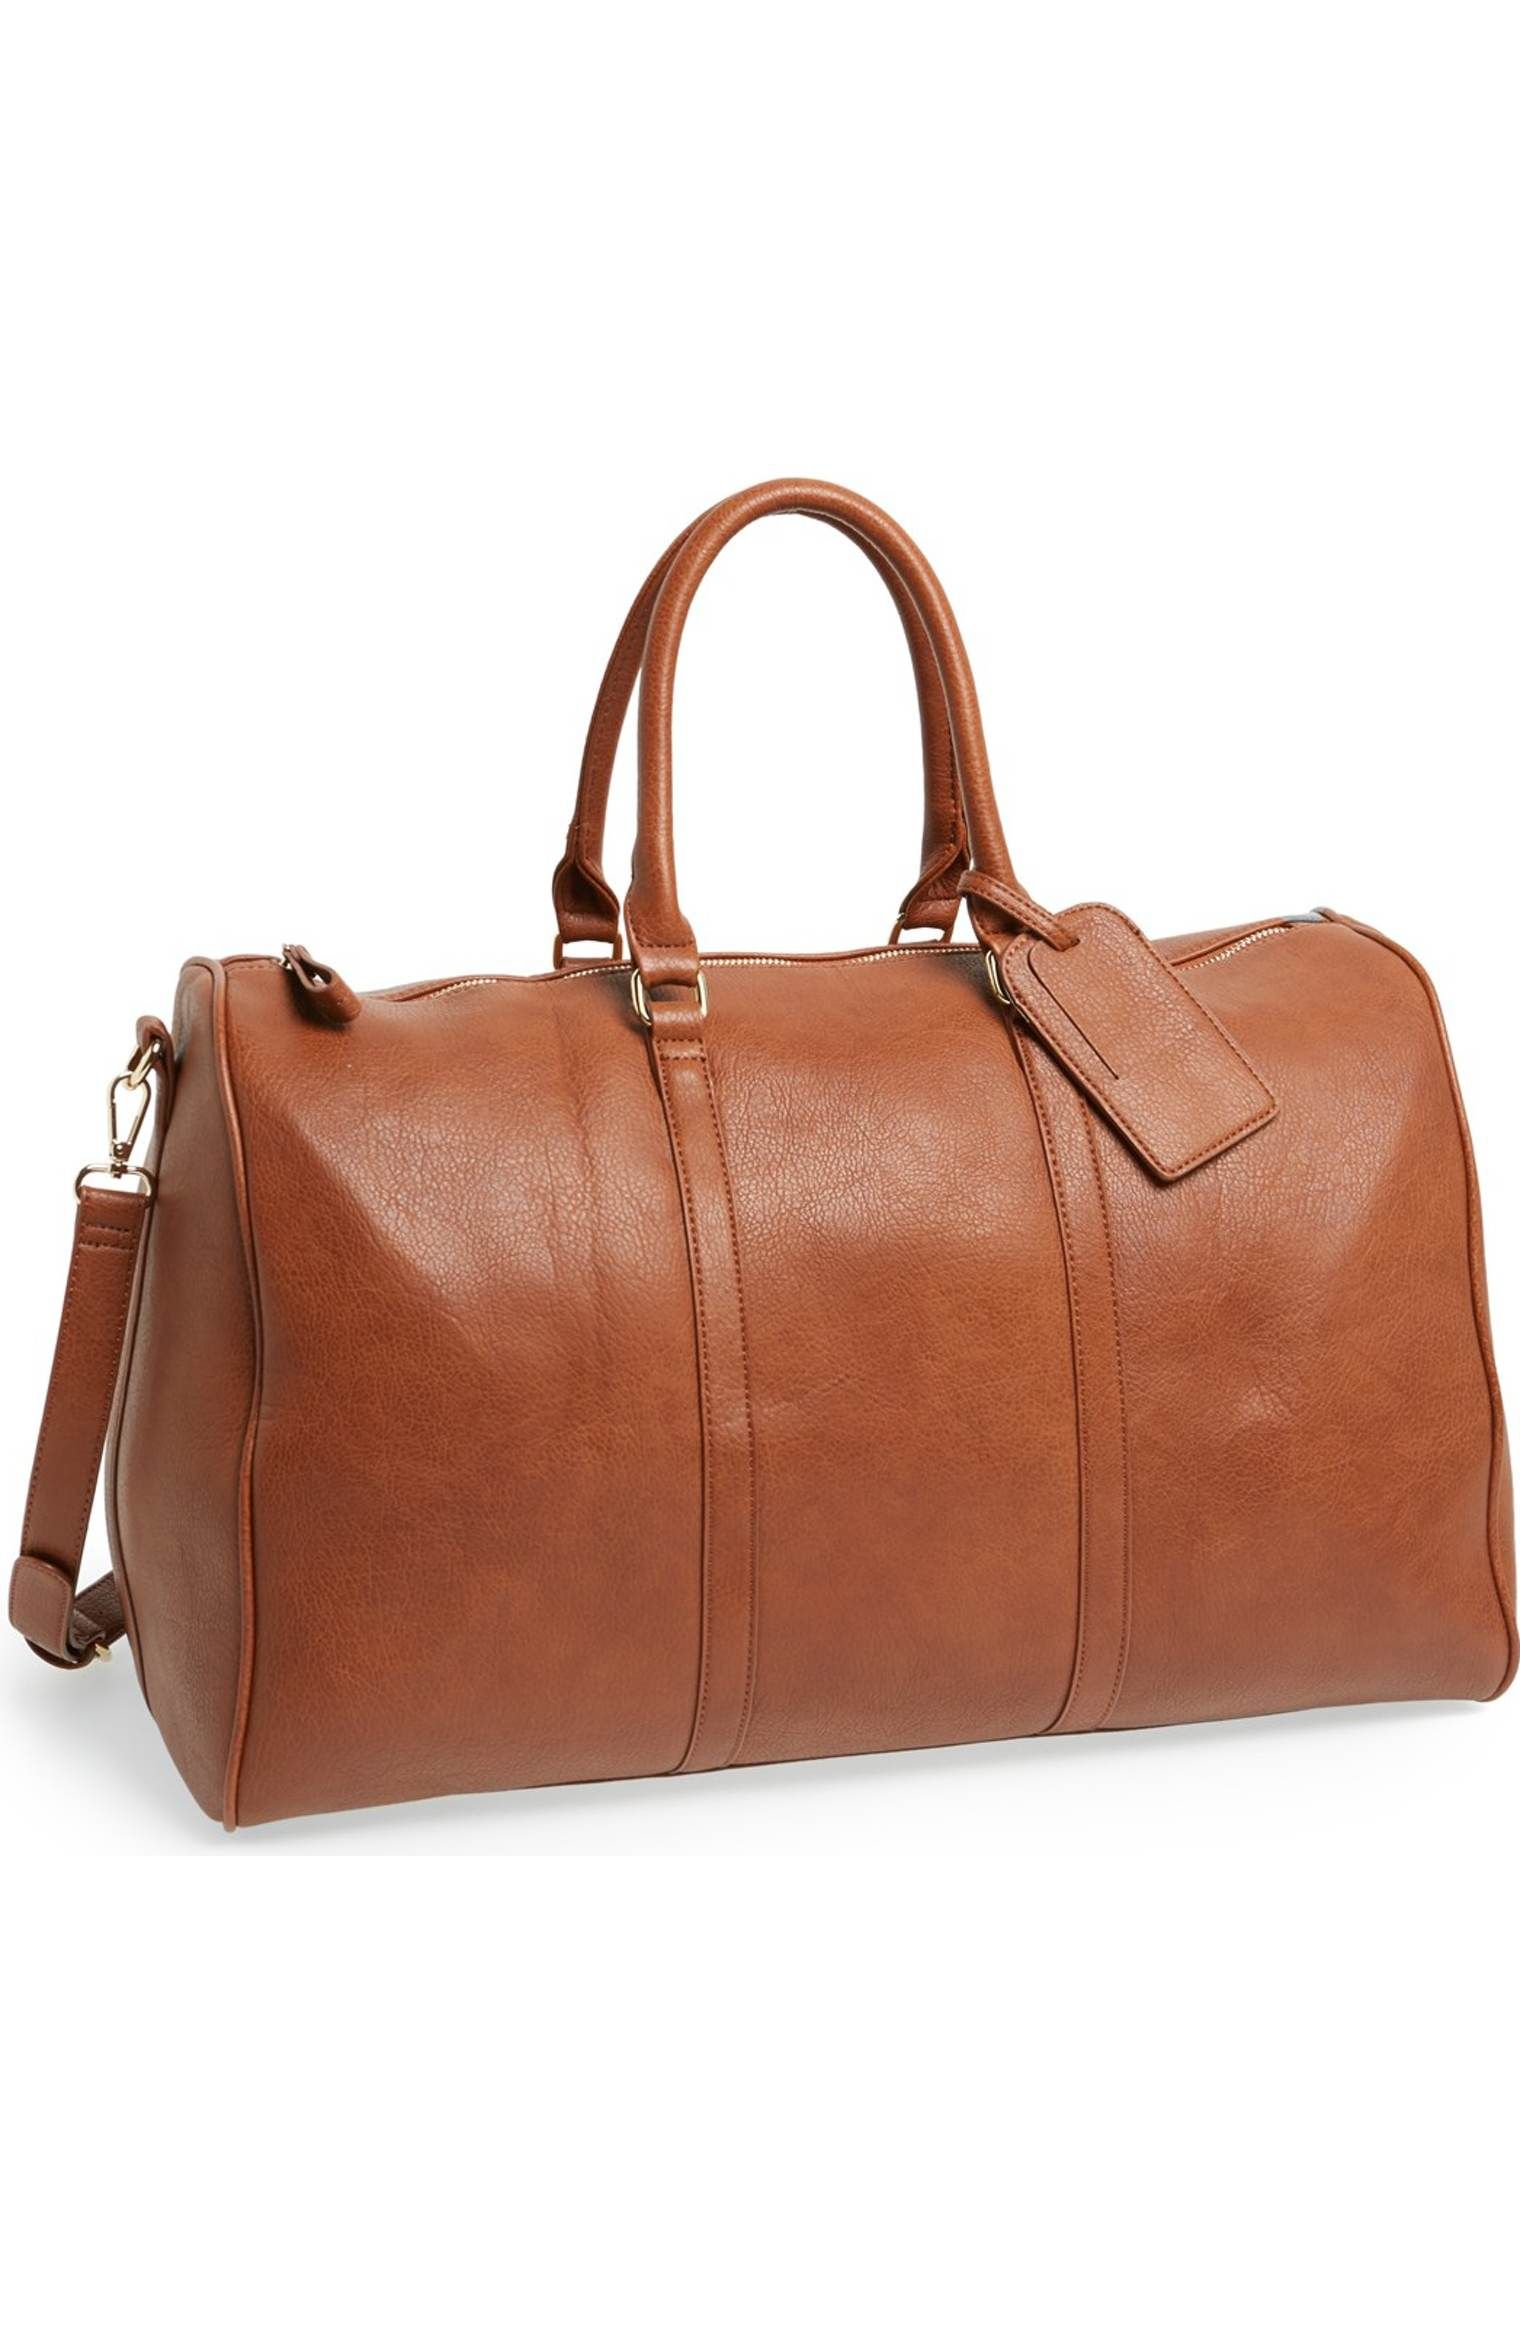 Main Image Sole Society Lacie Faux Leather Duffel Bag Leather Duffel Leather Duffel Bag Leather Duffle Bag